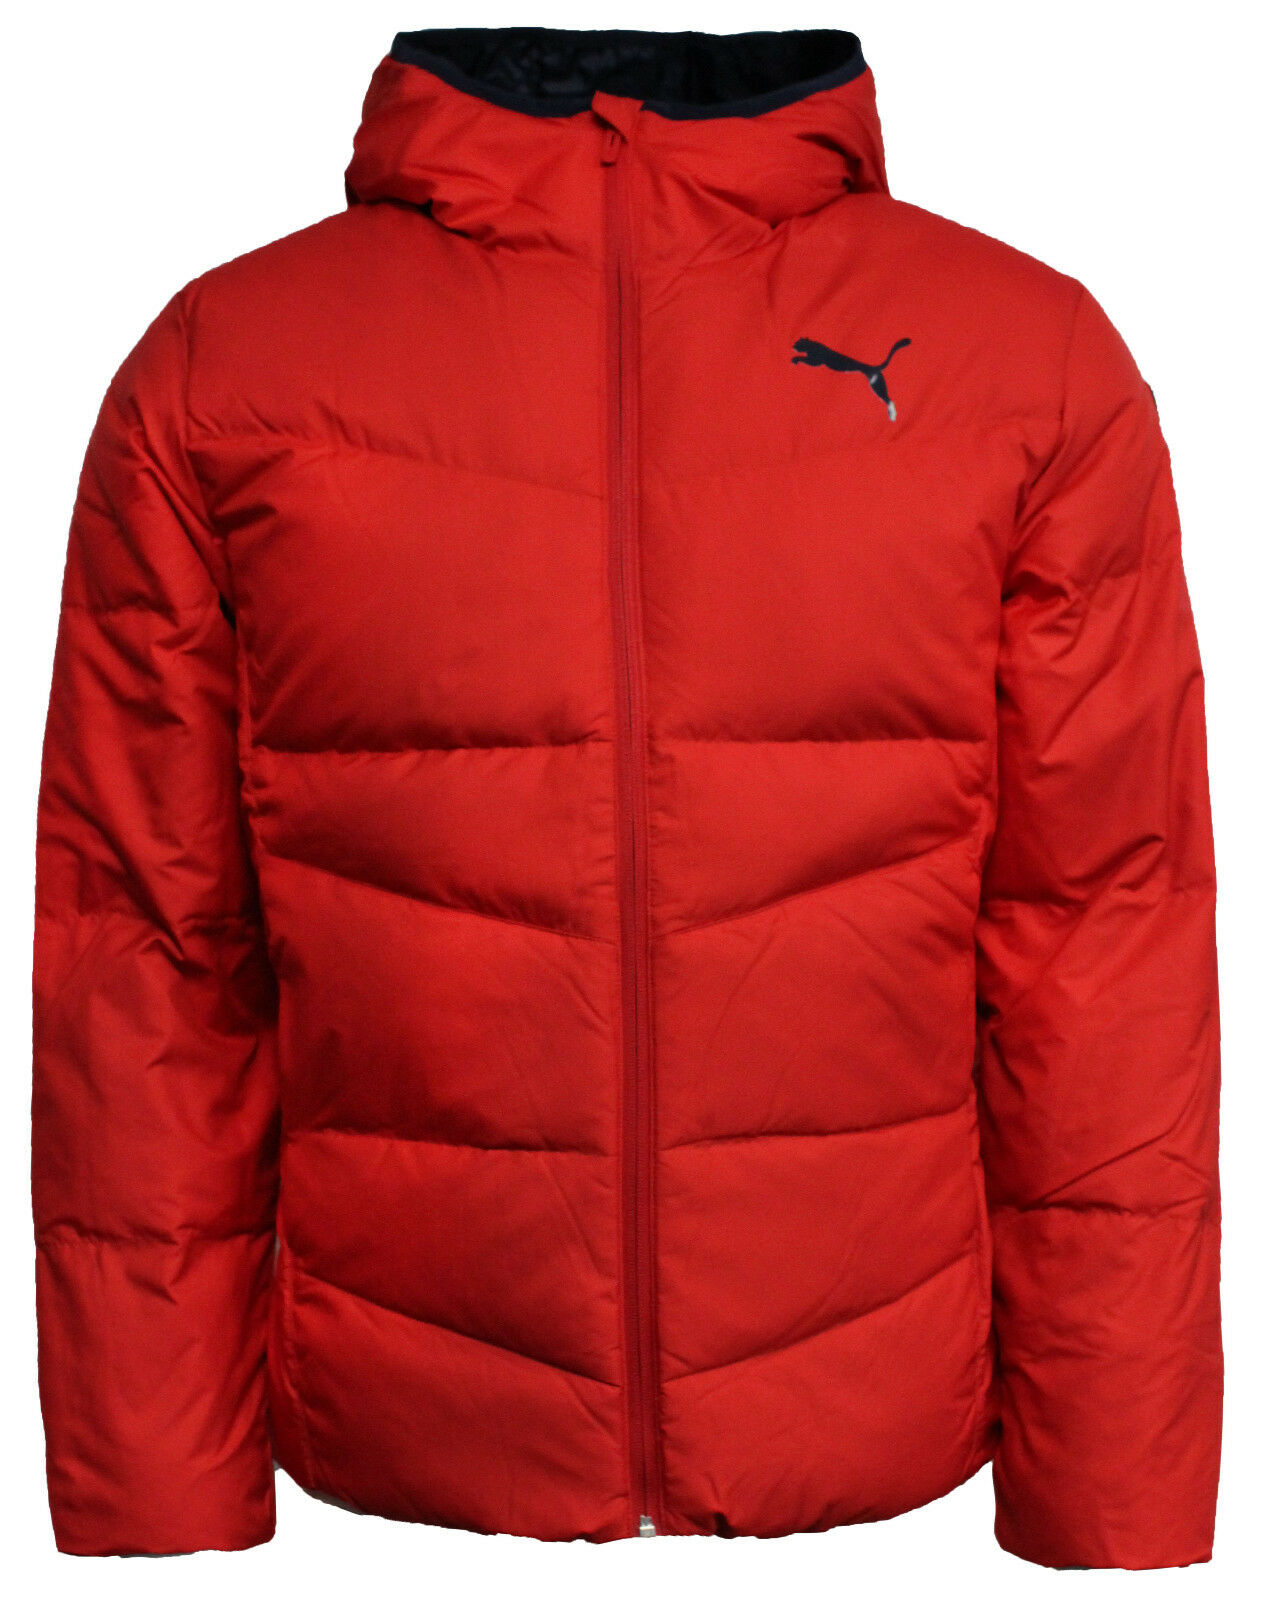 57412786961f Details about Puma Mens Zip Up Hooded Red Jacket Down Filled Puffer Coat  838642 09 M16